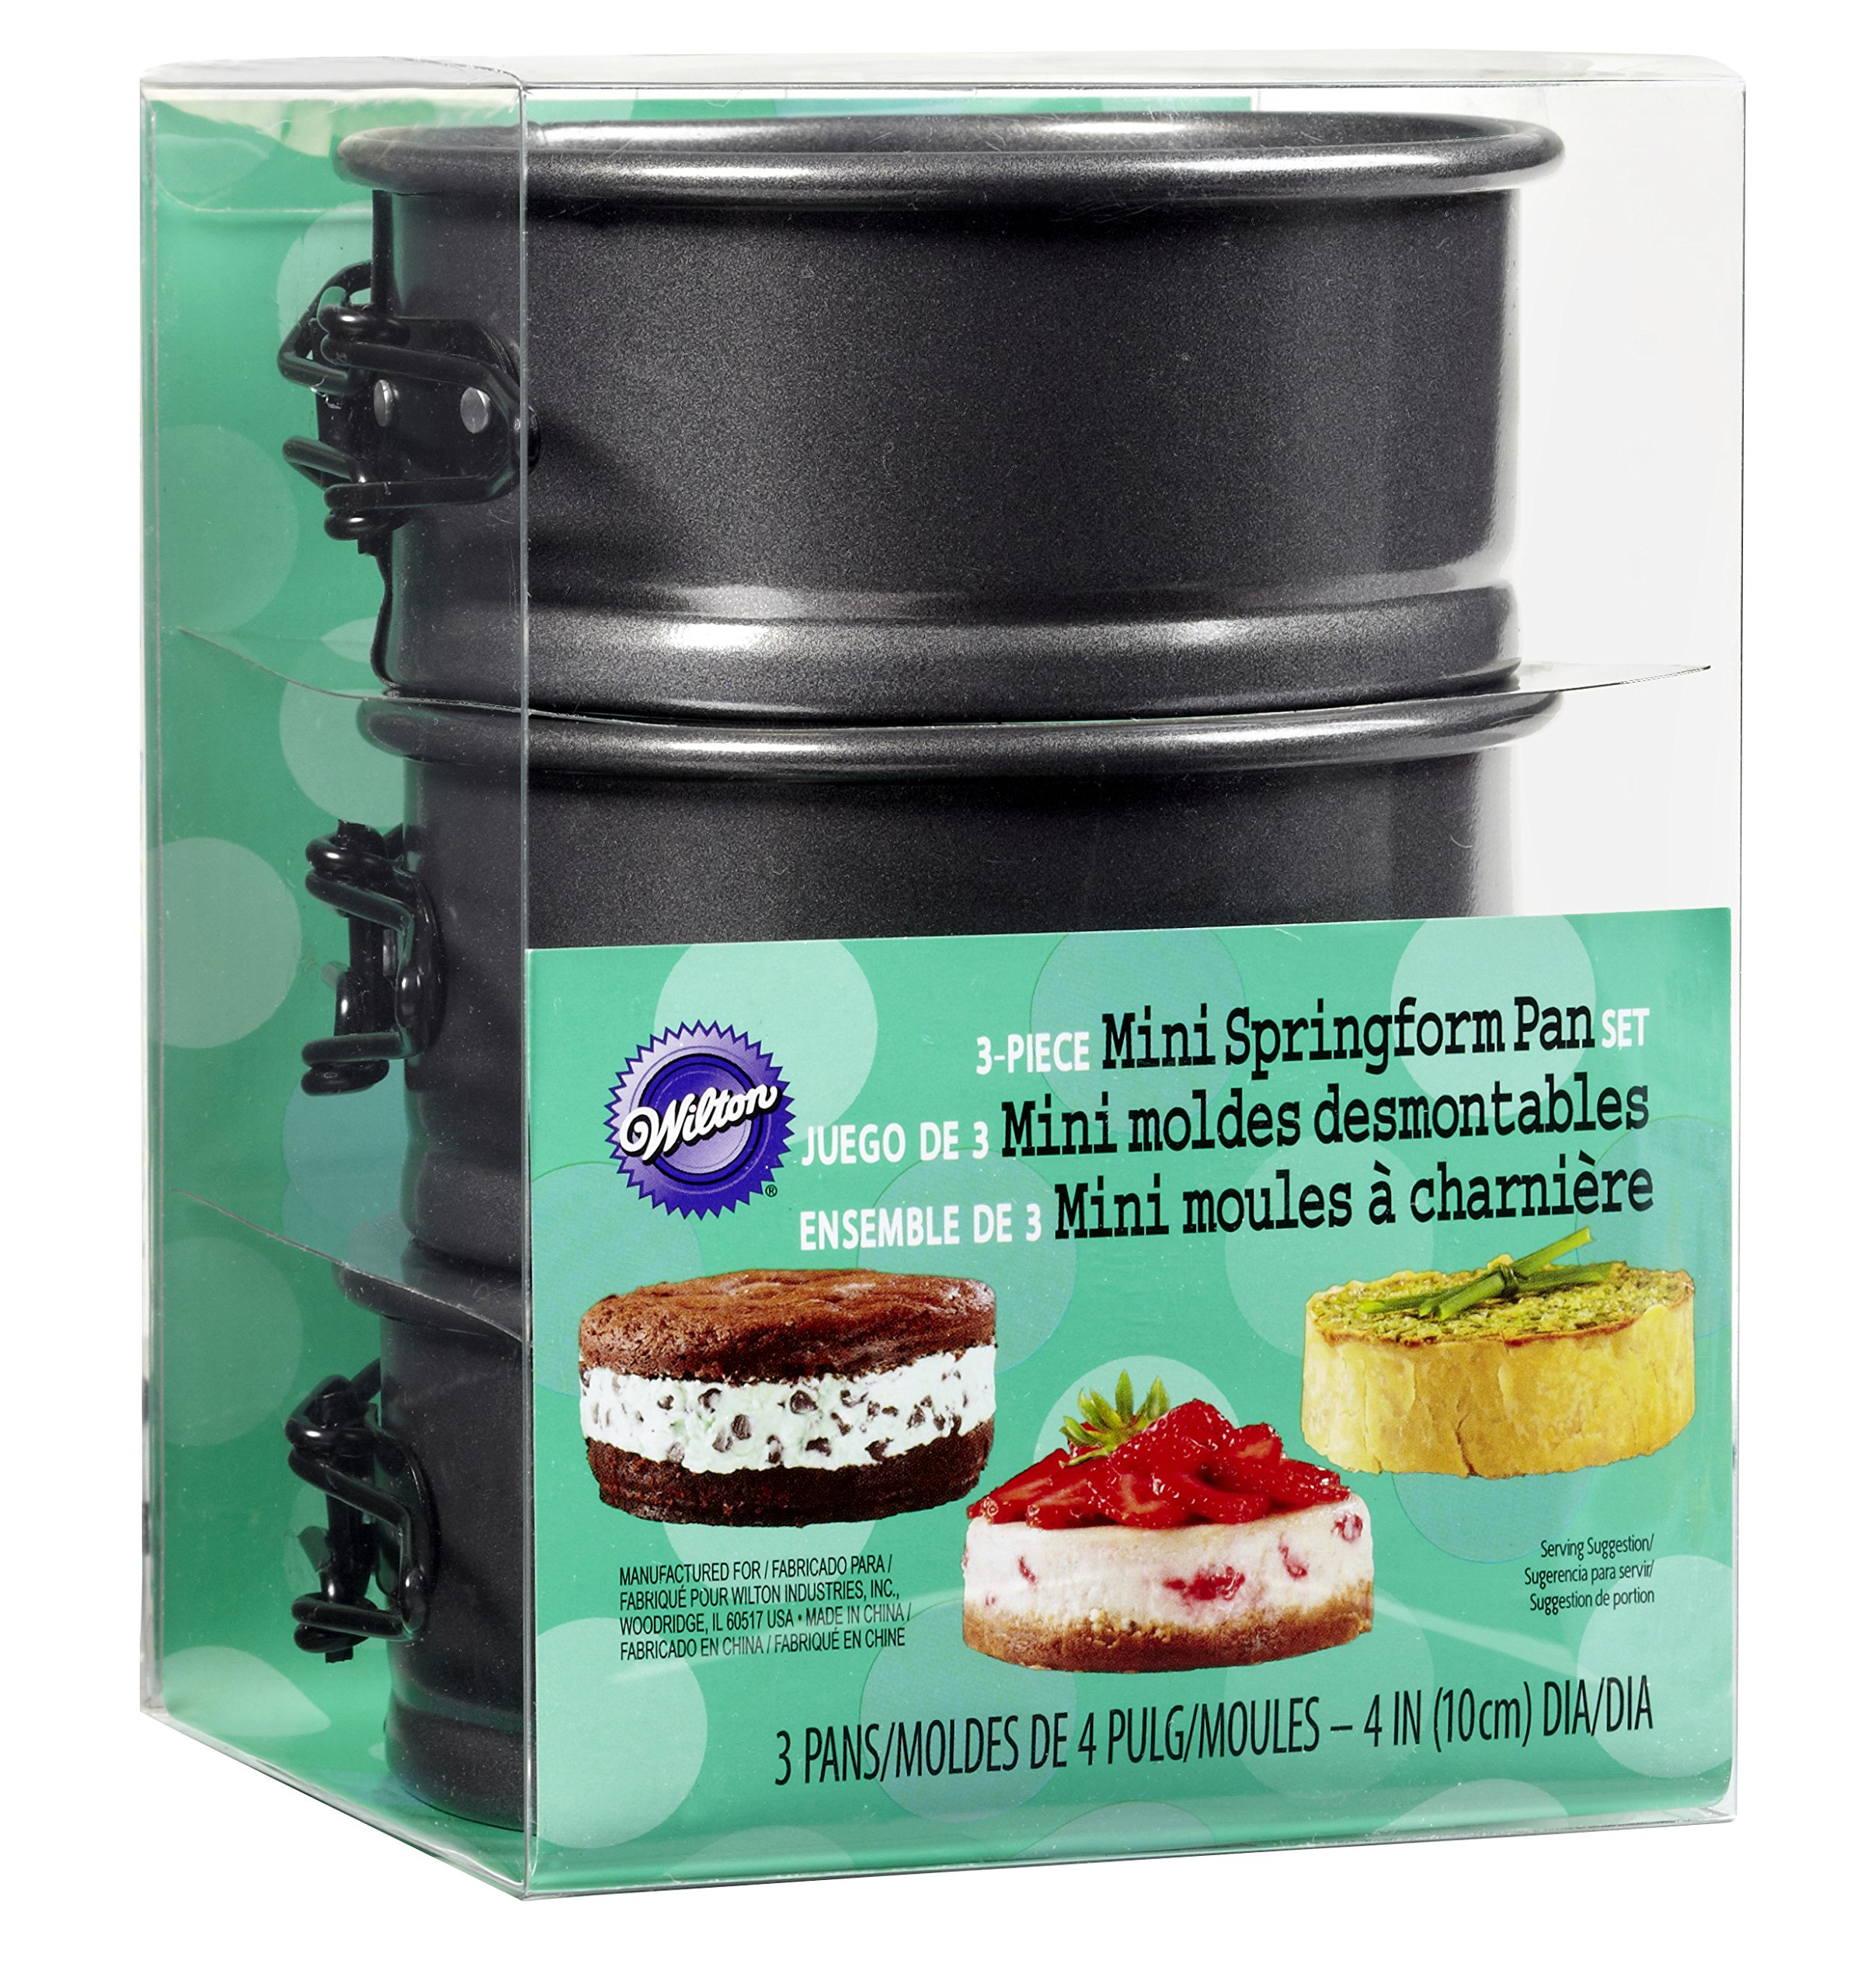 Wilton 4-Inch Mini Springform Pans Set, 3-Piece for Mini Cheesecakes, Pizzas and Quiches by Wilton (Image #3)